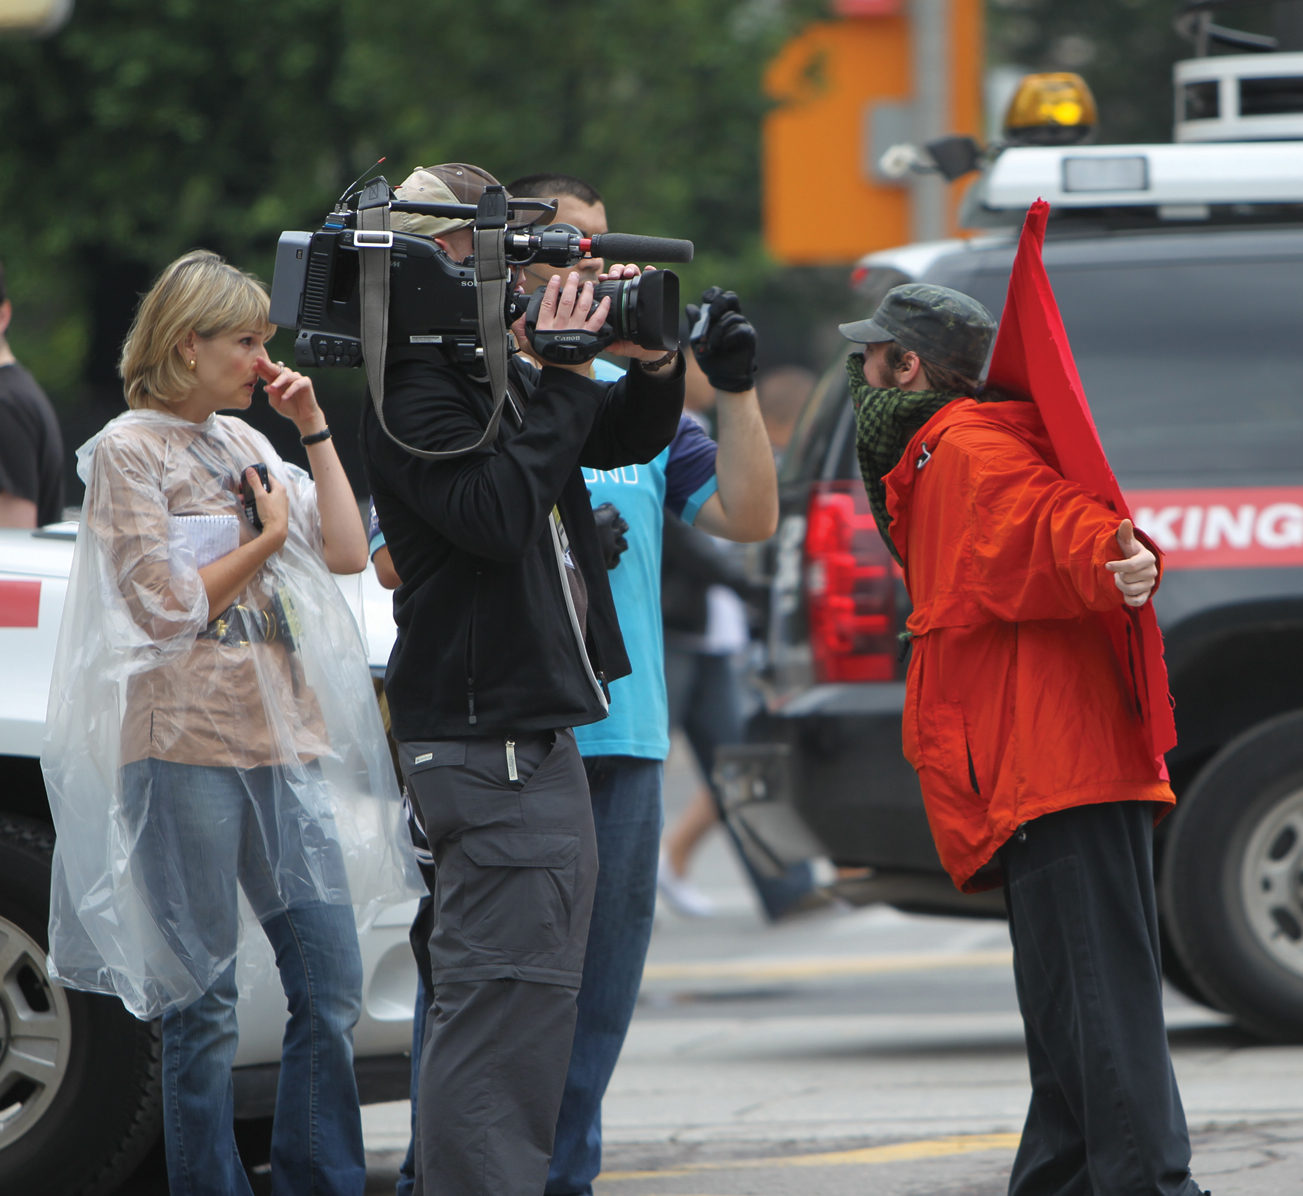 Camerman and citizen wearing red